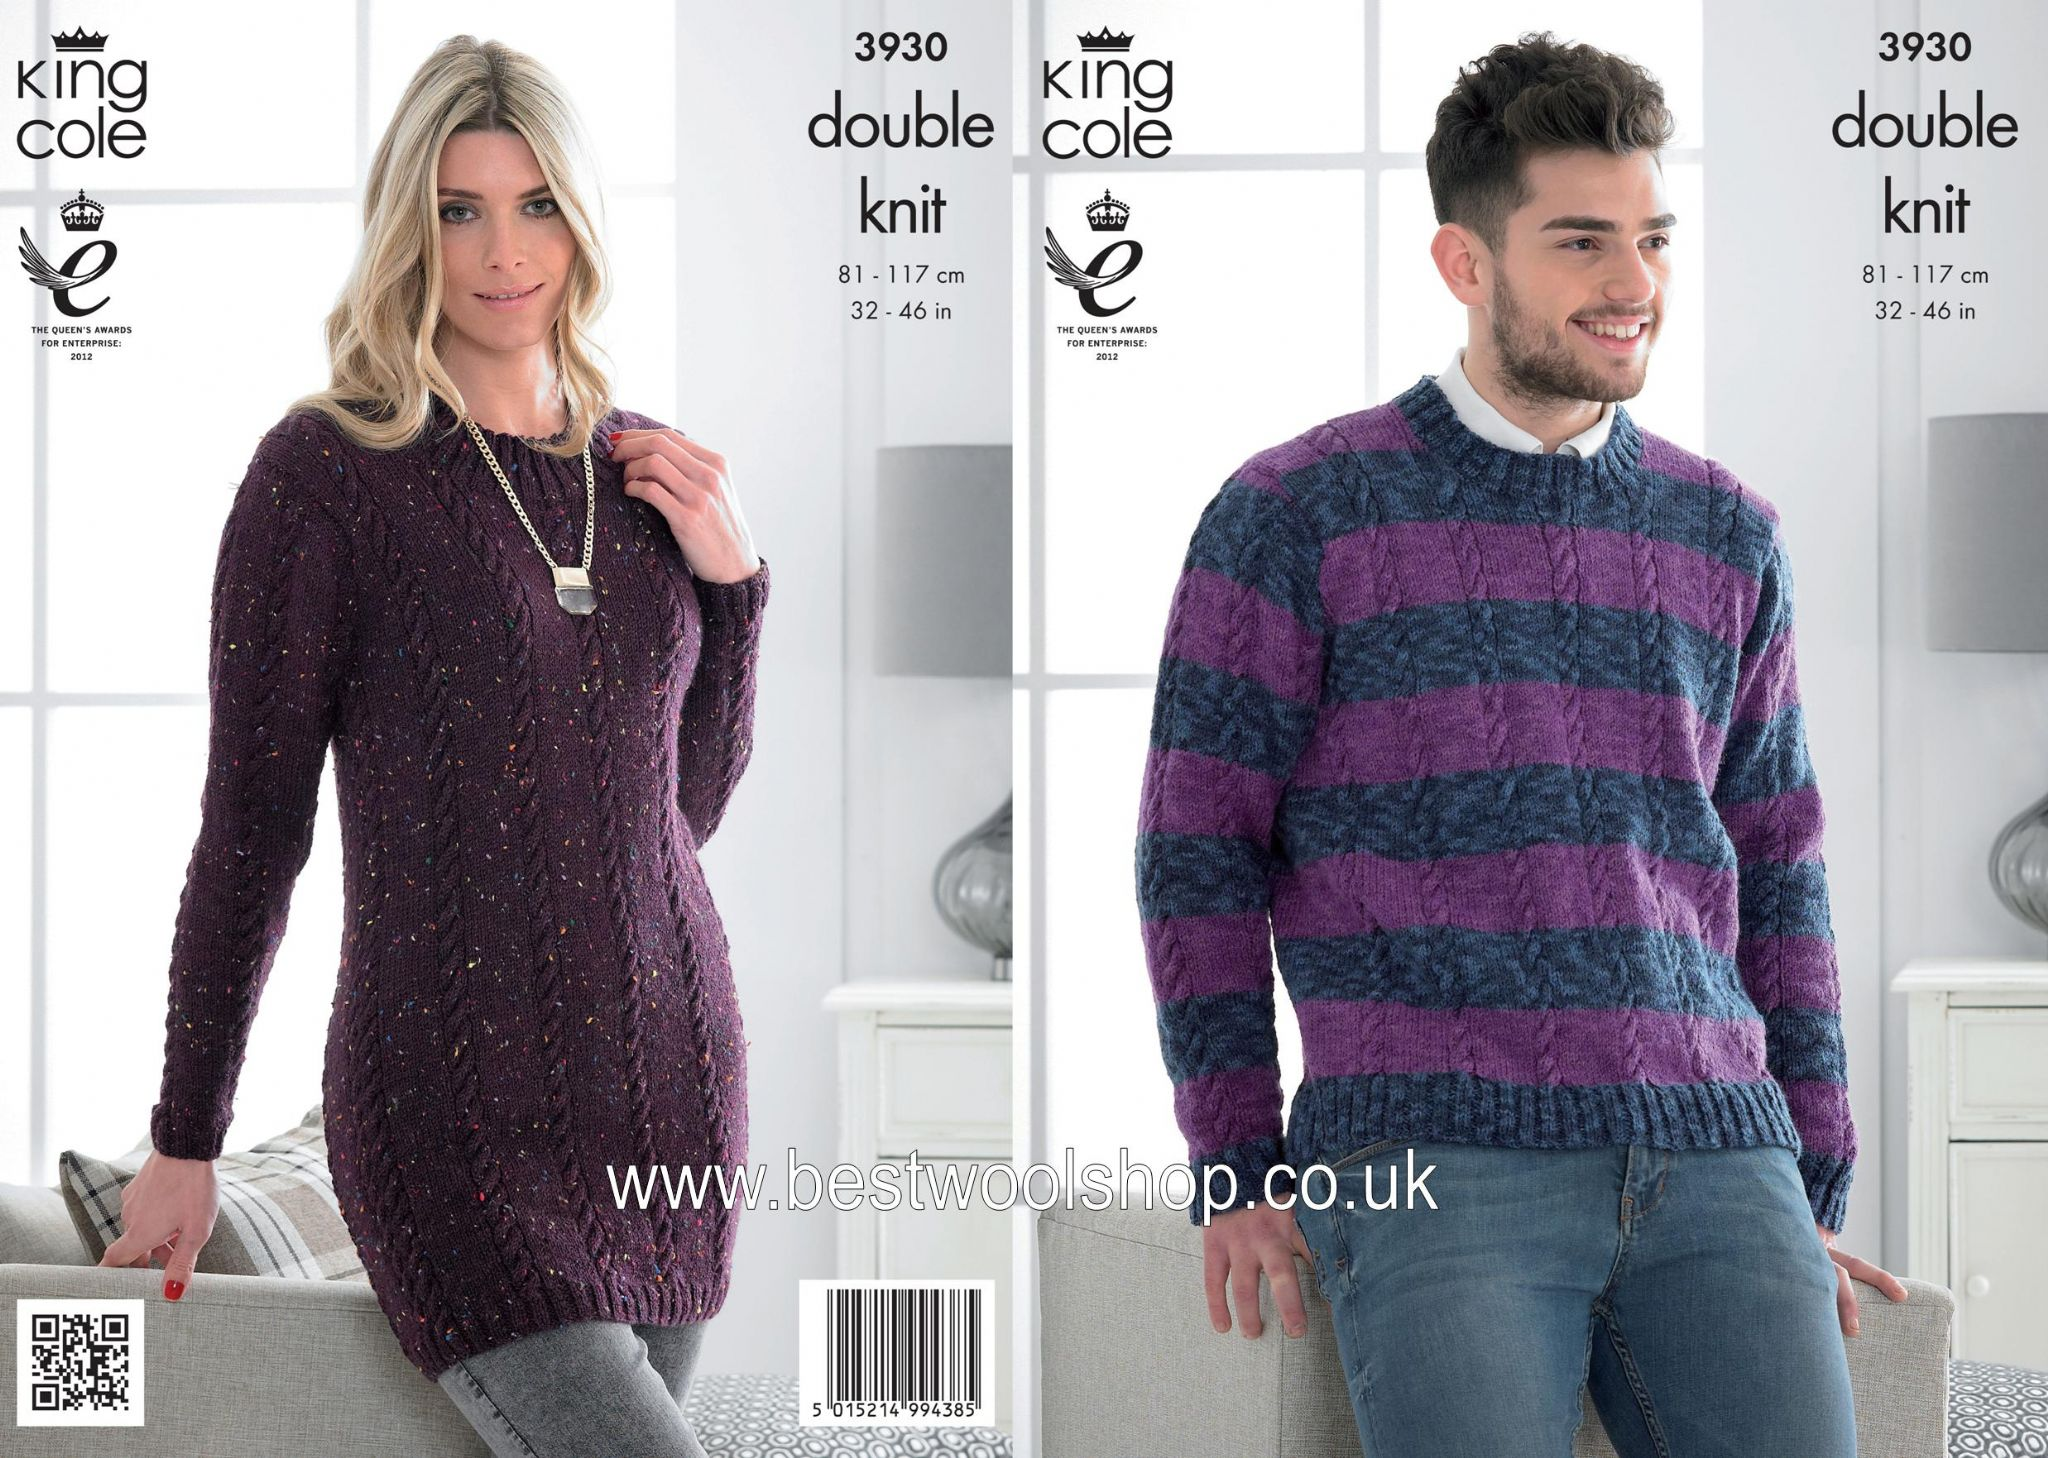 3930 - KING COLE MOODS DK MENS SWEATER & LADIES SWEATER DRESS TUNIC ...